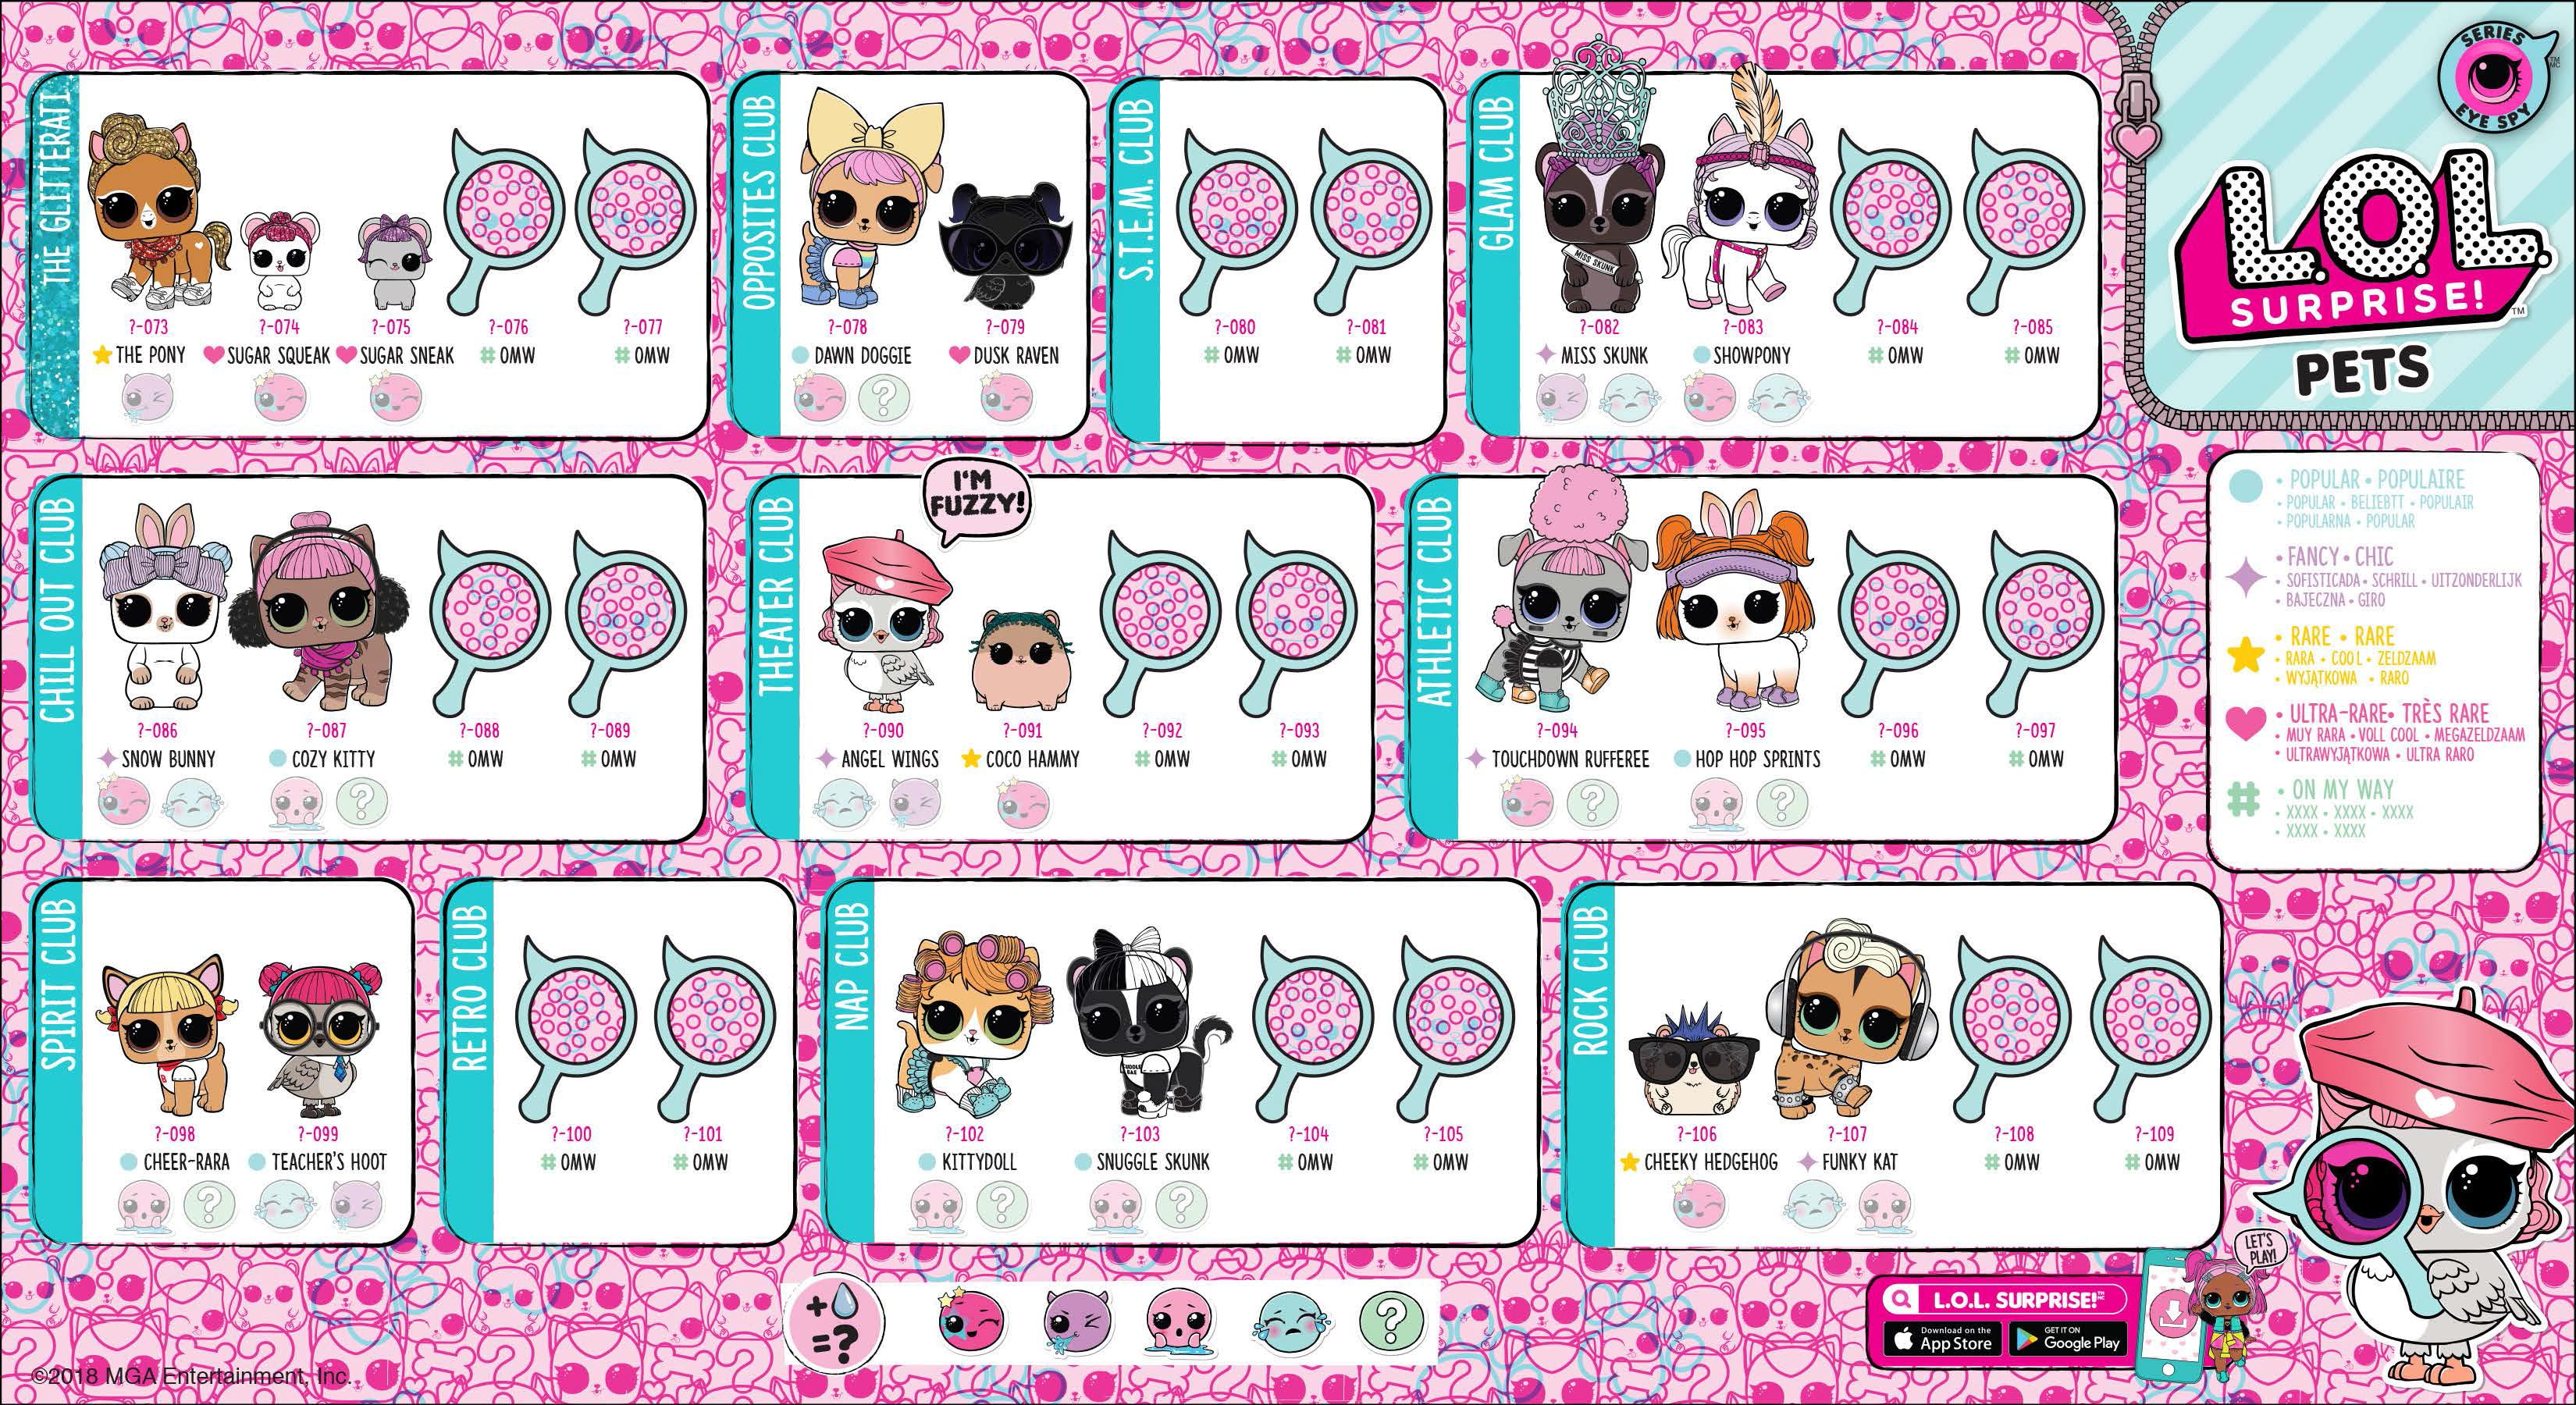 Full Size Lol Surprise Series 4 Eye Spy Pets Collector Guide List